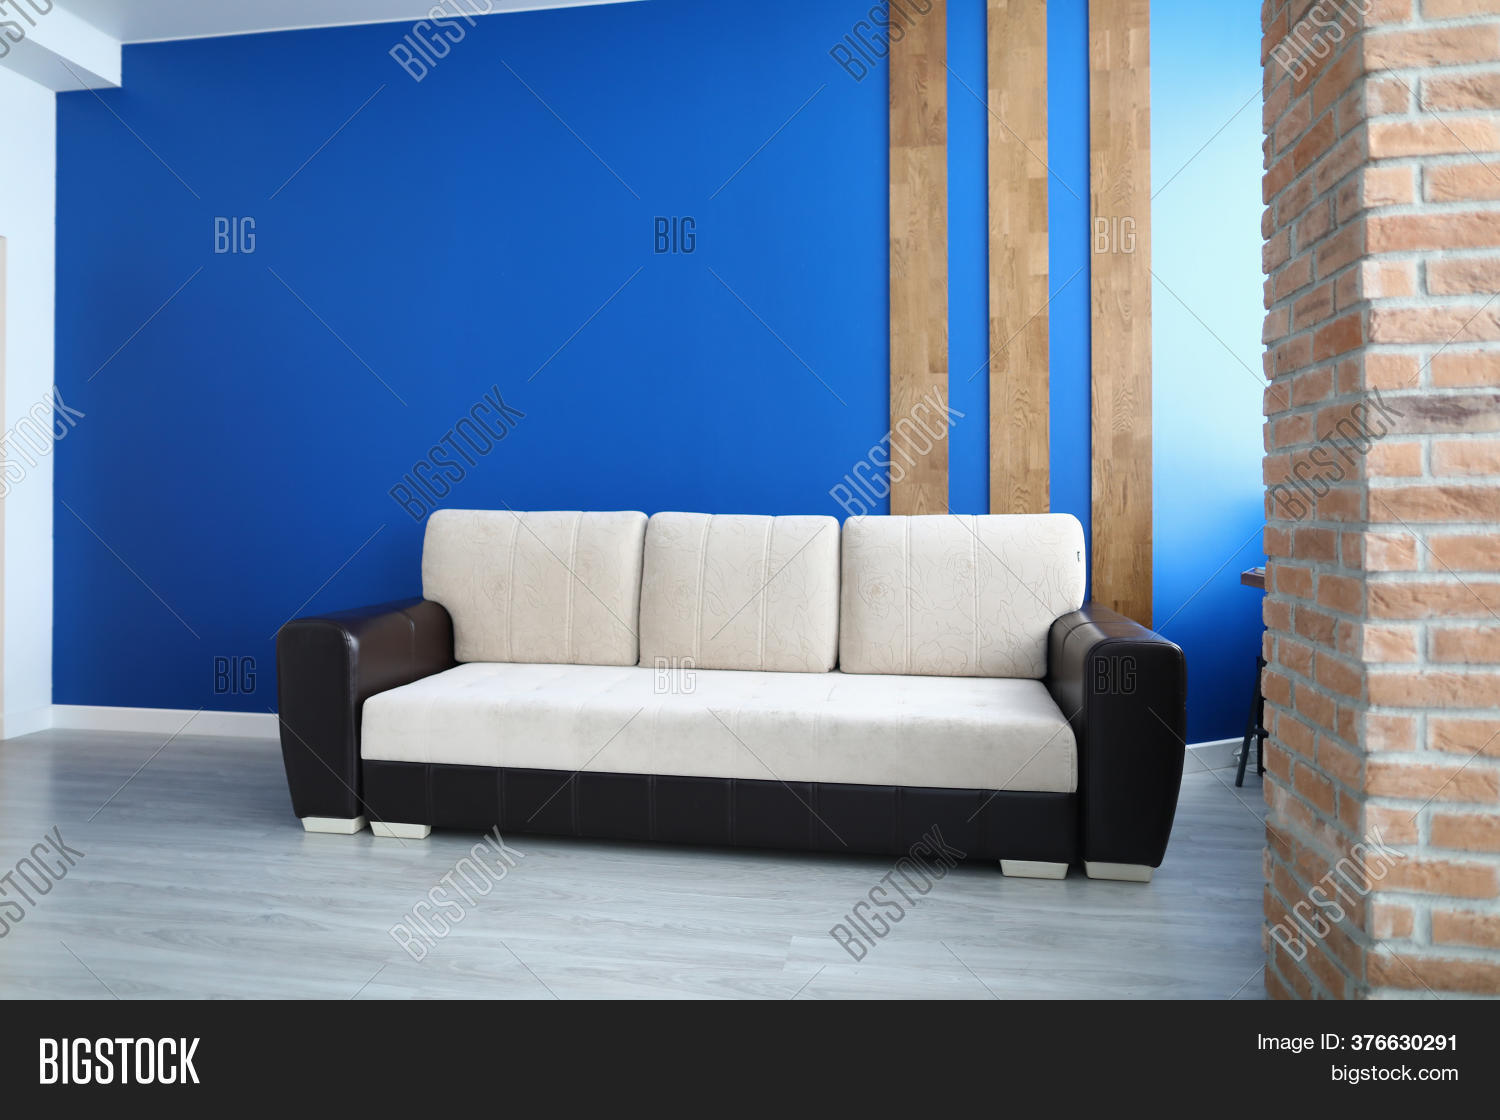 Picture of: Close Comfy Sofa Image Photo Free Trial Bigstock